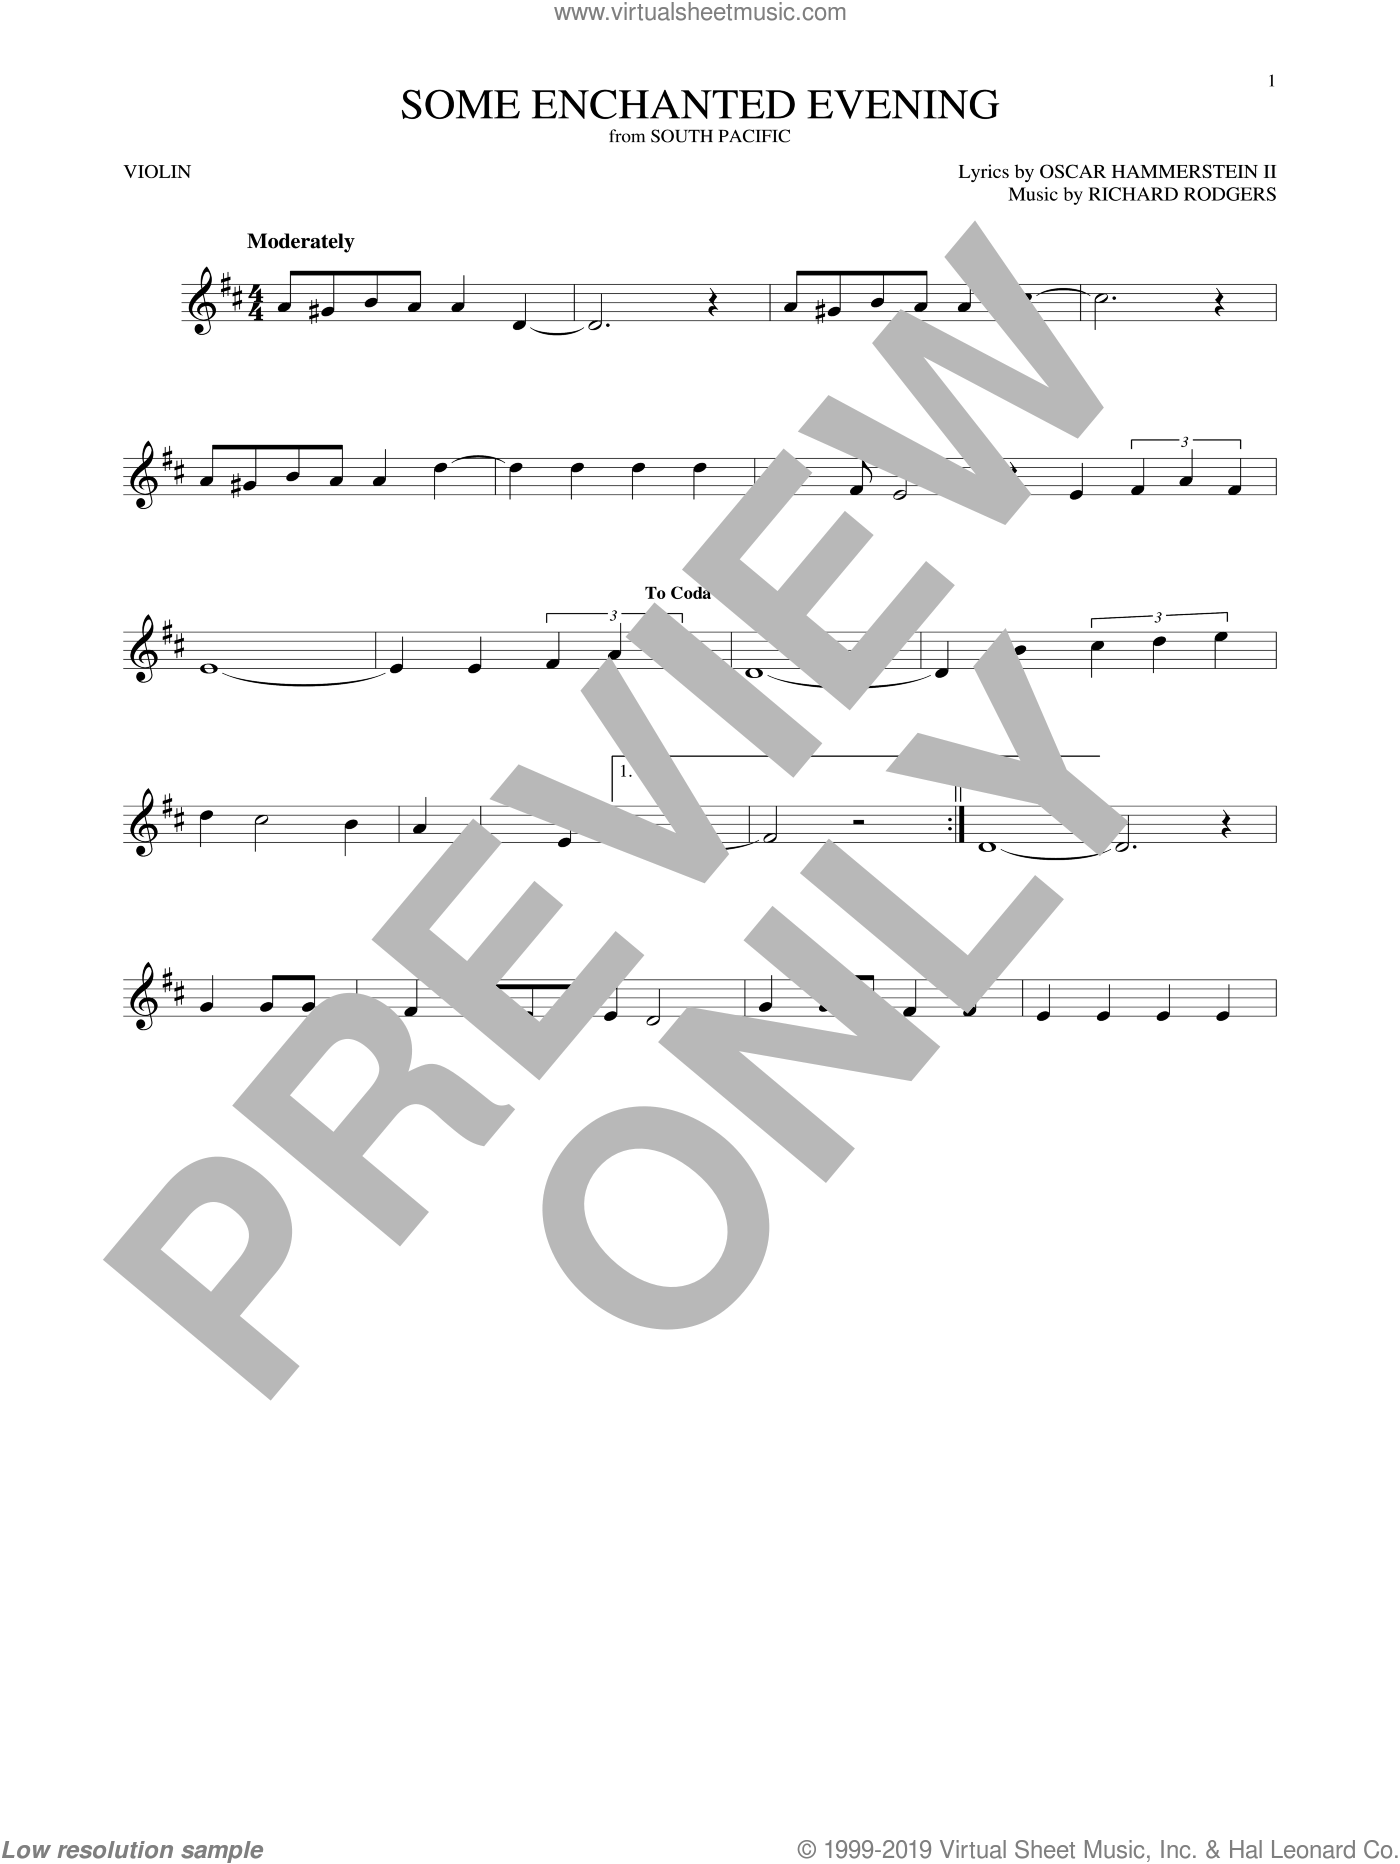 Some Enchanted Evening sheet music for violin solo by Rodgers & Hammerstein, Oscar II Hammerstein and Richard Rodgers, intermediate